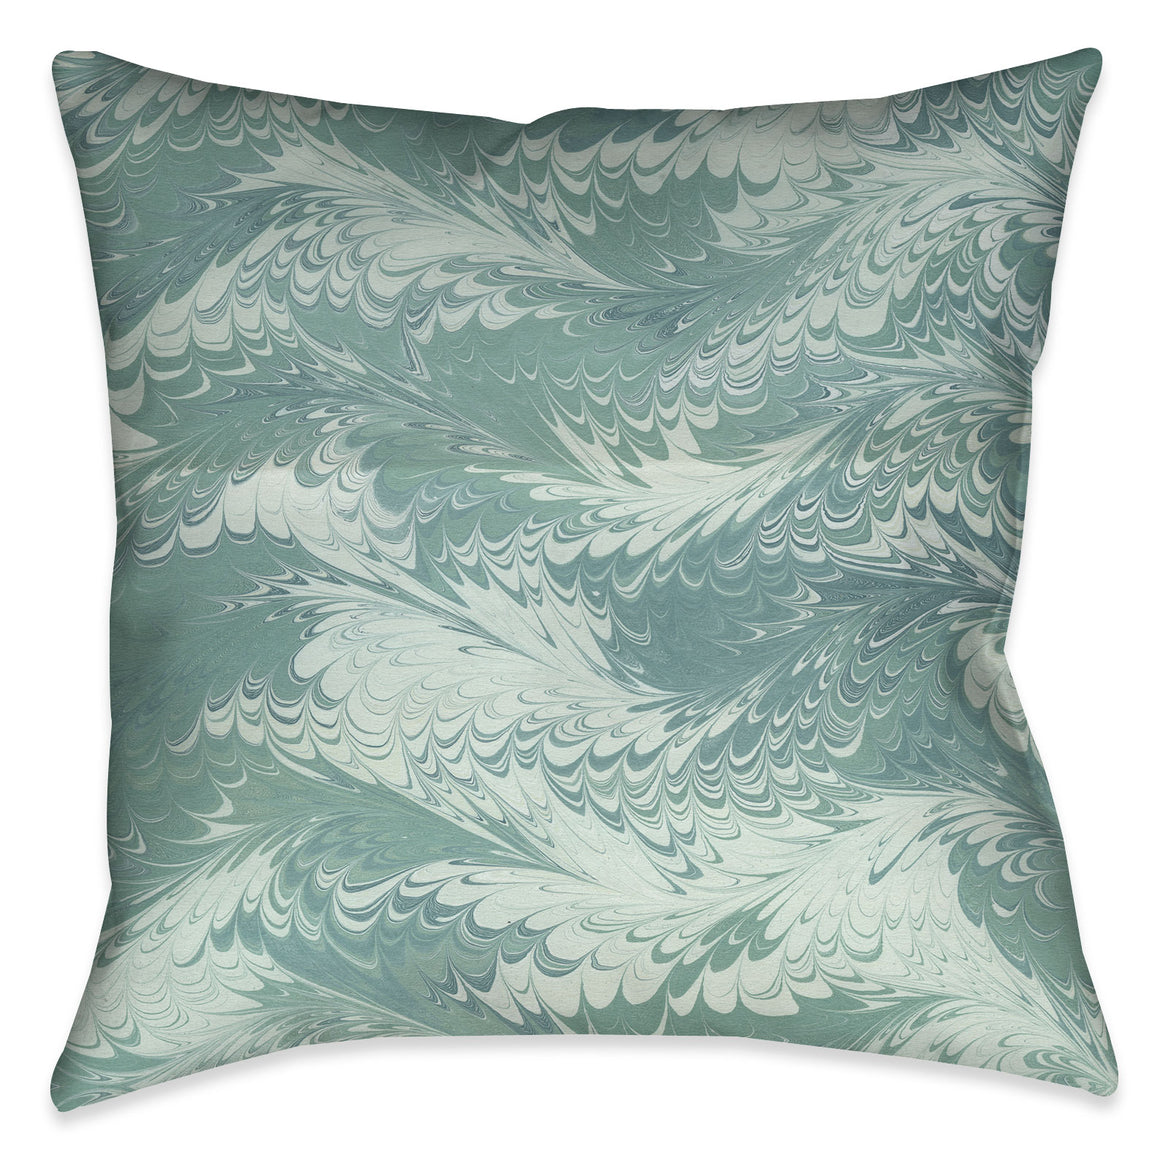 Pastel Mint Marble Decorative Pillow